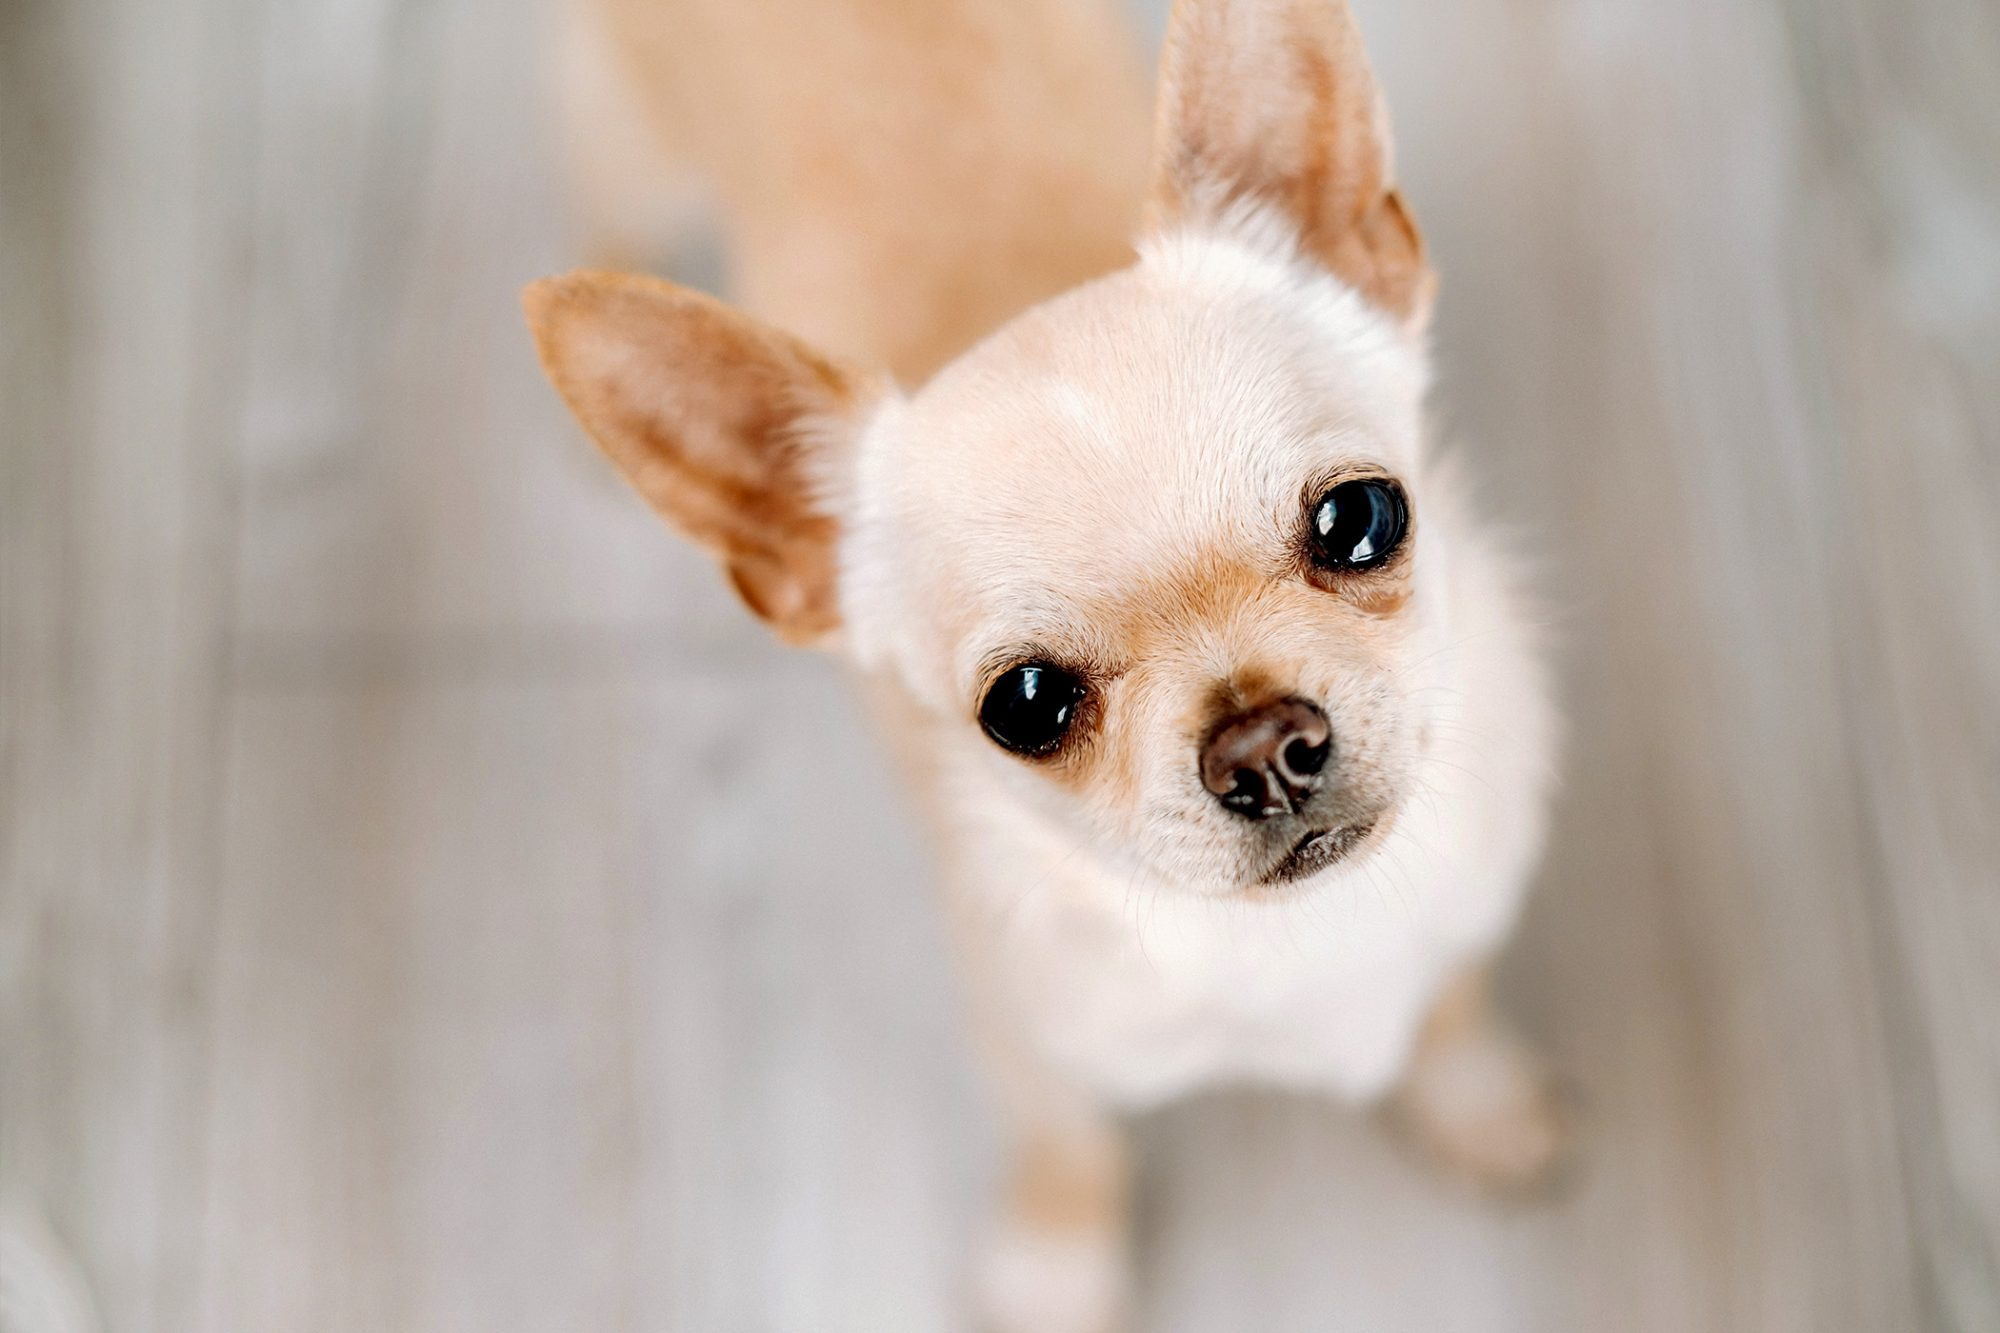 Little blonde chihuahua looks up at camera in focused portrait